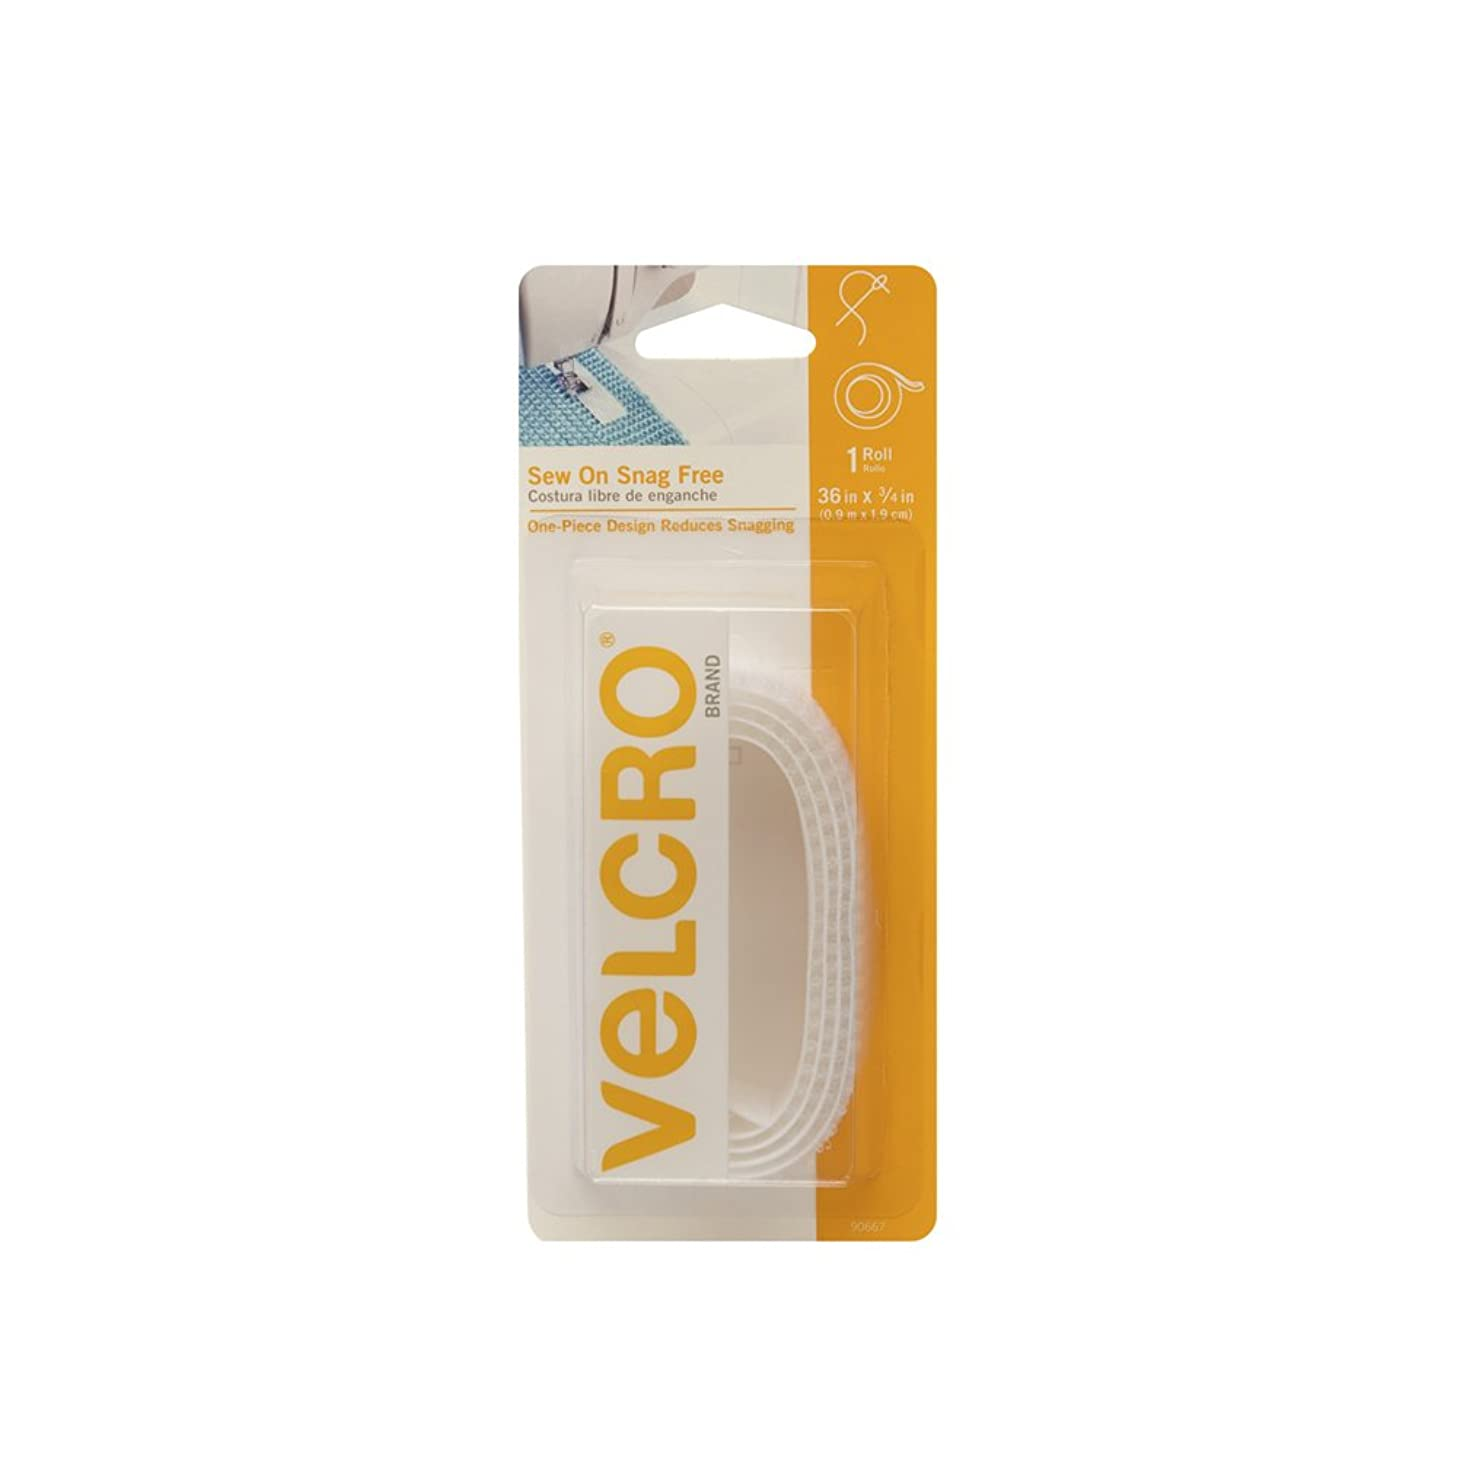 VELCRO Brand Sew On Snag-Free Tape for Alterations and Hemming | No No Ironing or Gluing Light Duty One-Piece Fabric Fastener | Cut-to-Length Roll, 36 x 3/4 inch, White